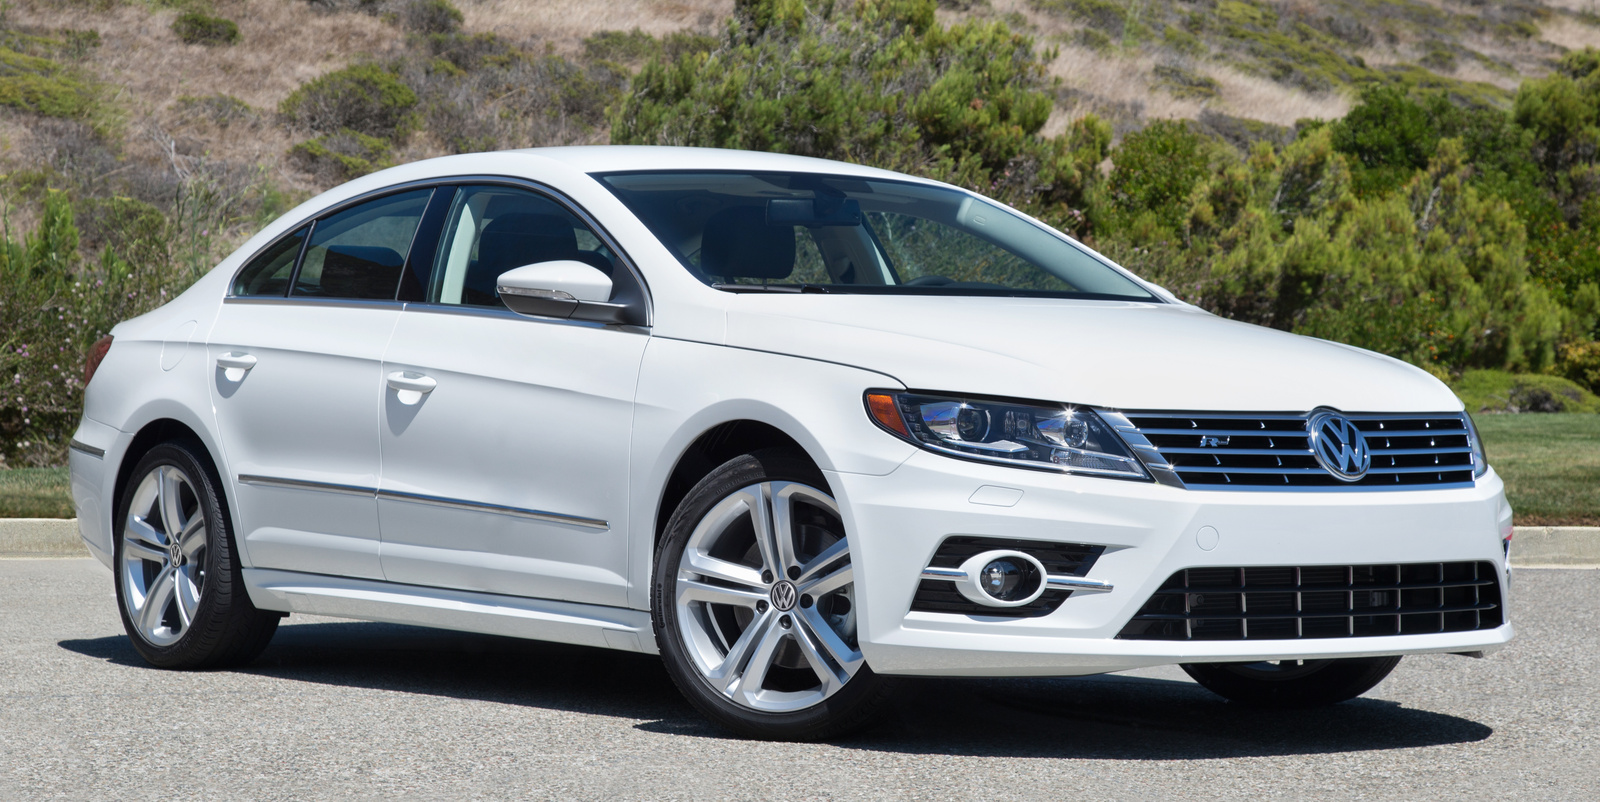 2016 / 2017 Volkswagen CC for Sale in your area - CarGurus